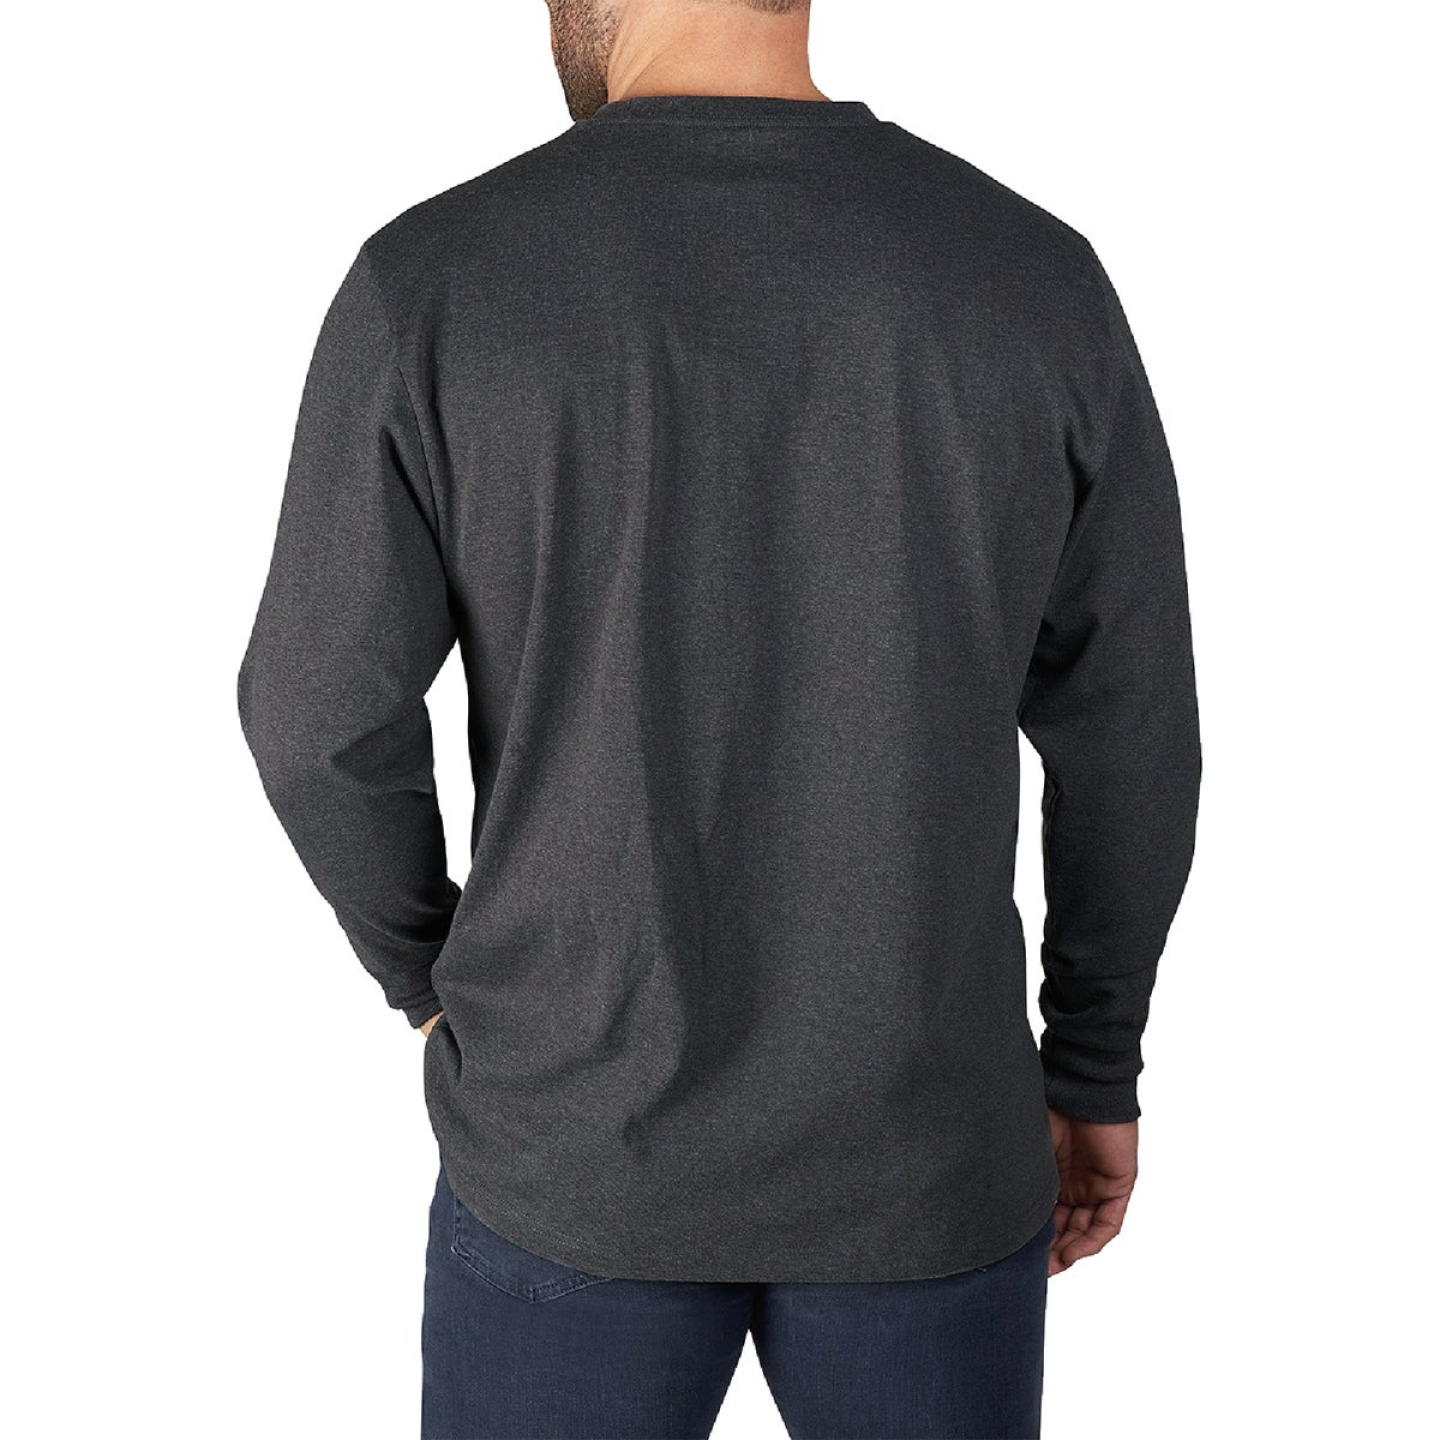 Milwaukee XL Gray Long Sleeve Men's Heavy-Duty Pocket Shirt Image 5